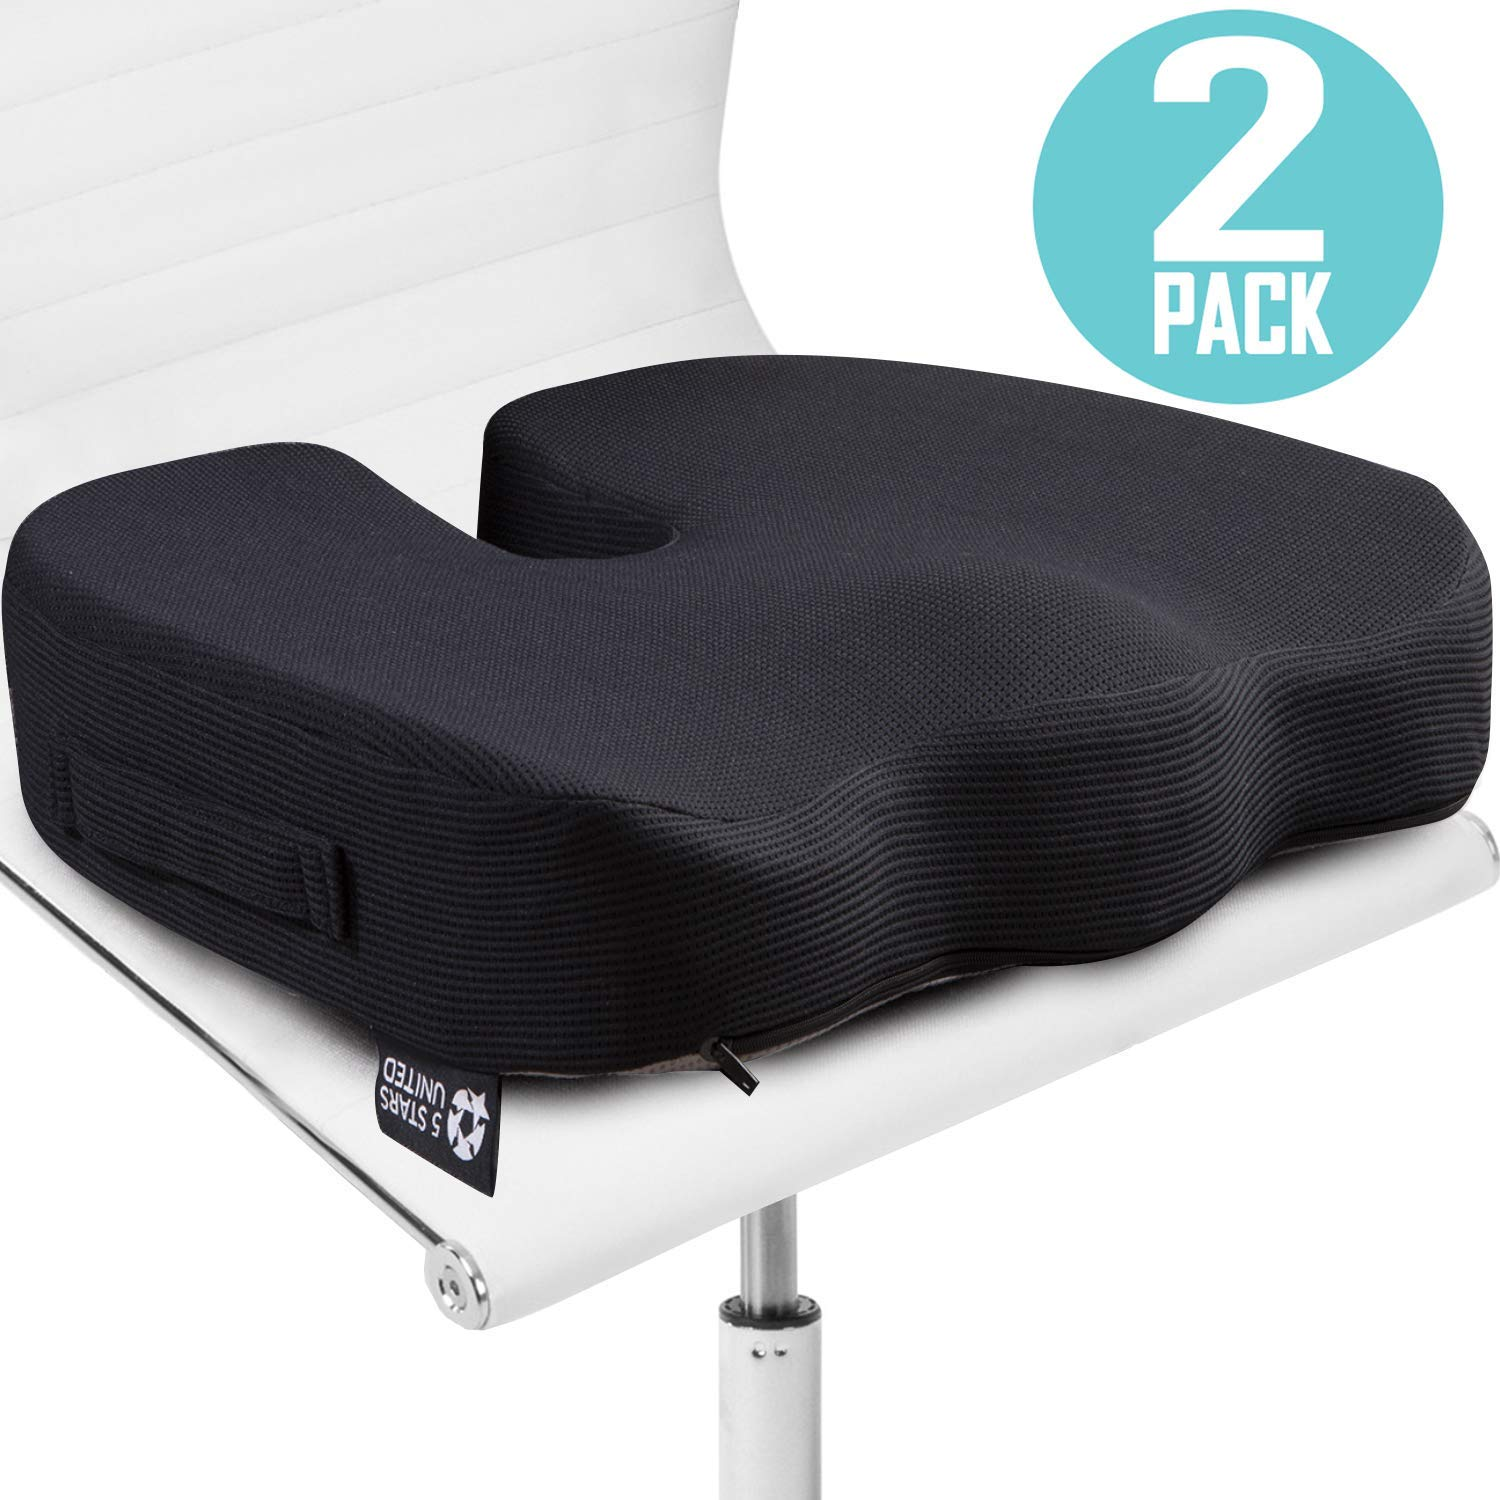 Seat Cushion Pillow for Office Chair - 2-Pack, 100% Memory Foam - Firm Coccyx Pad - for People 150-220lb - Tailbone, Sciatica, Lower Back Pain Relief - Posture Corrector for Car, Wheelchair, Desk by 5 STARS UNITED